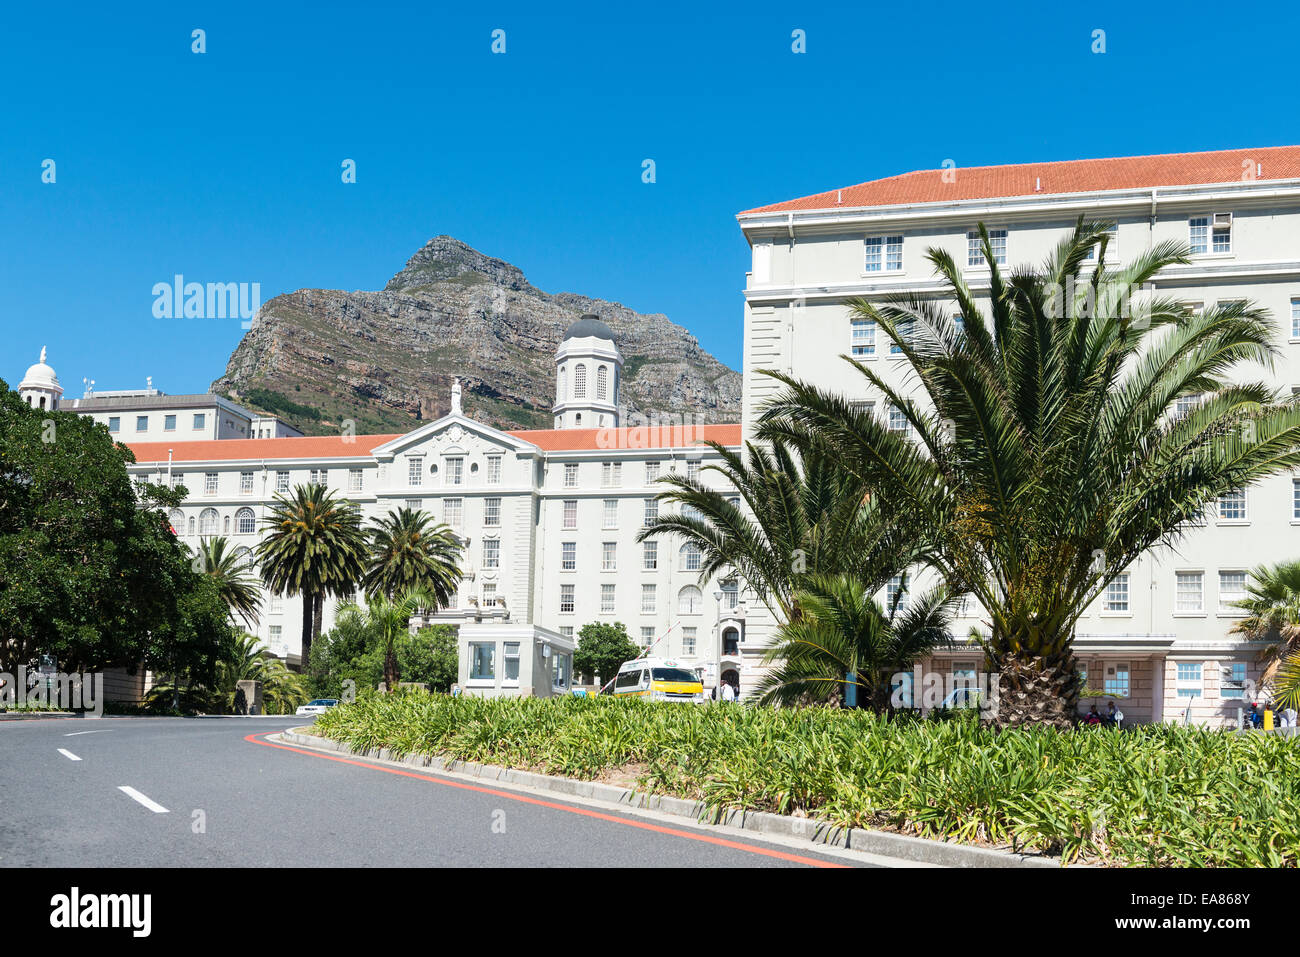 Groote Schuur Hospital on the slopes of Devil's Peak, Cape Town, South Africa - Stock Image